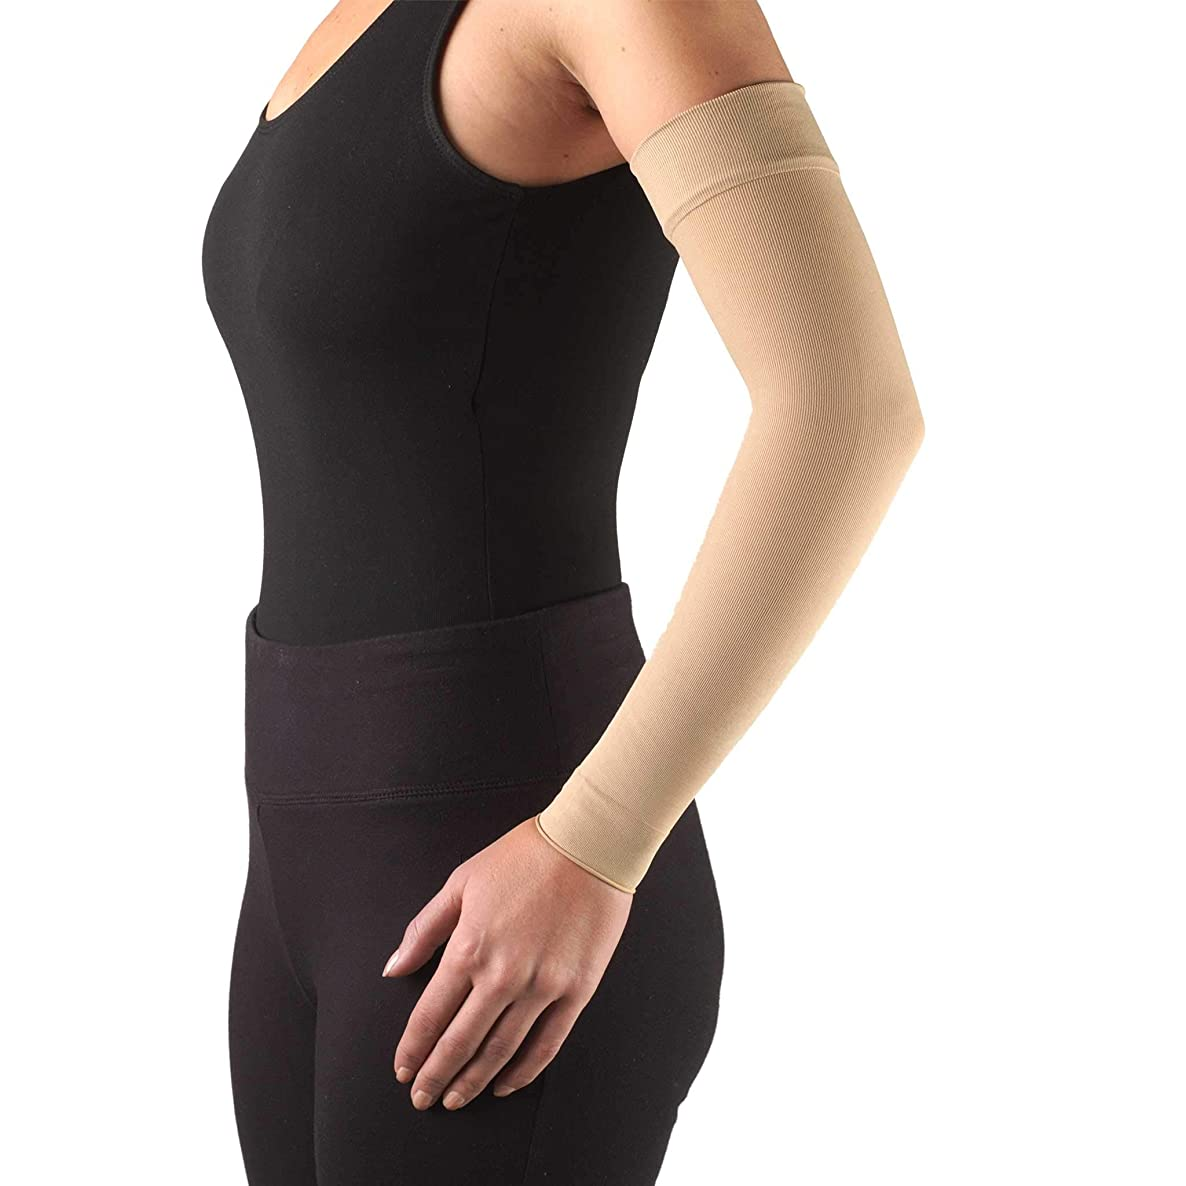 Truform Lymphedema Compression Arm Sleeve, 15-20 mmHg Post Mastectomy Support, Medium (15-20 mmHg)